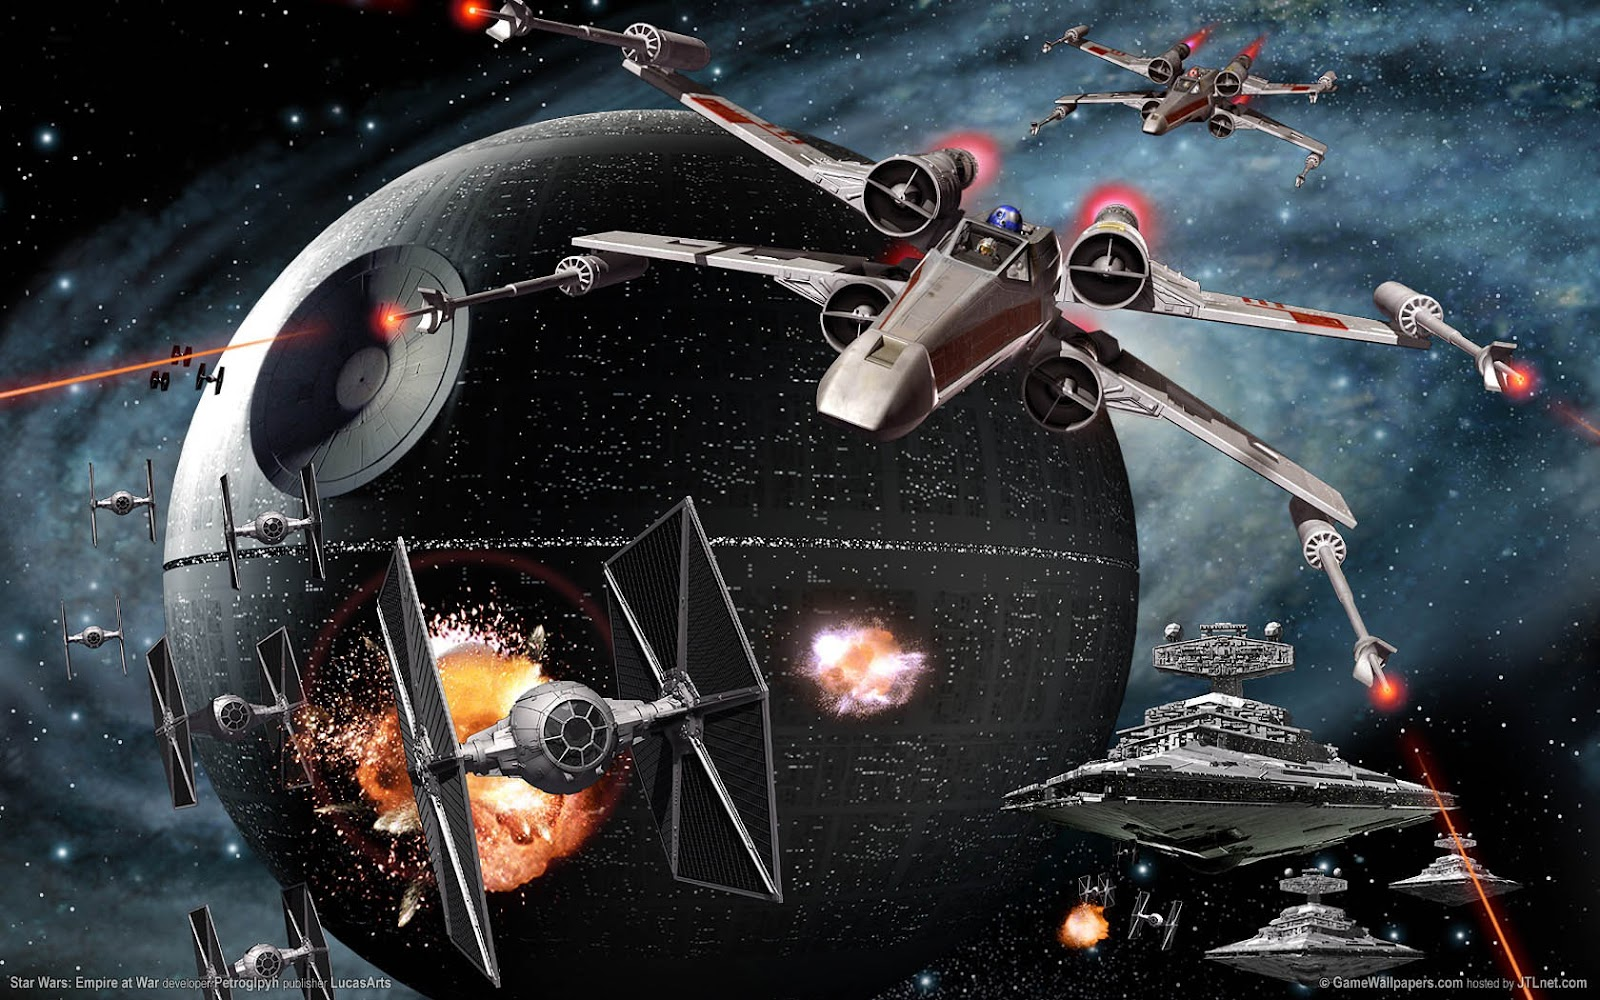 http://2.bp.blogspot.com/-aQg0c1SWsio/TvwVznBYBhI/AAAAAAAAR4U/w22fdMygPkA/s1600/wallpaper_star_wars_empire_at_war_05_1680x1050.jpg